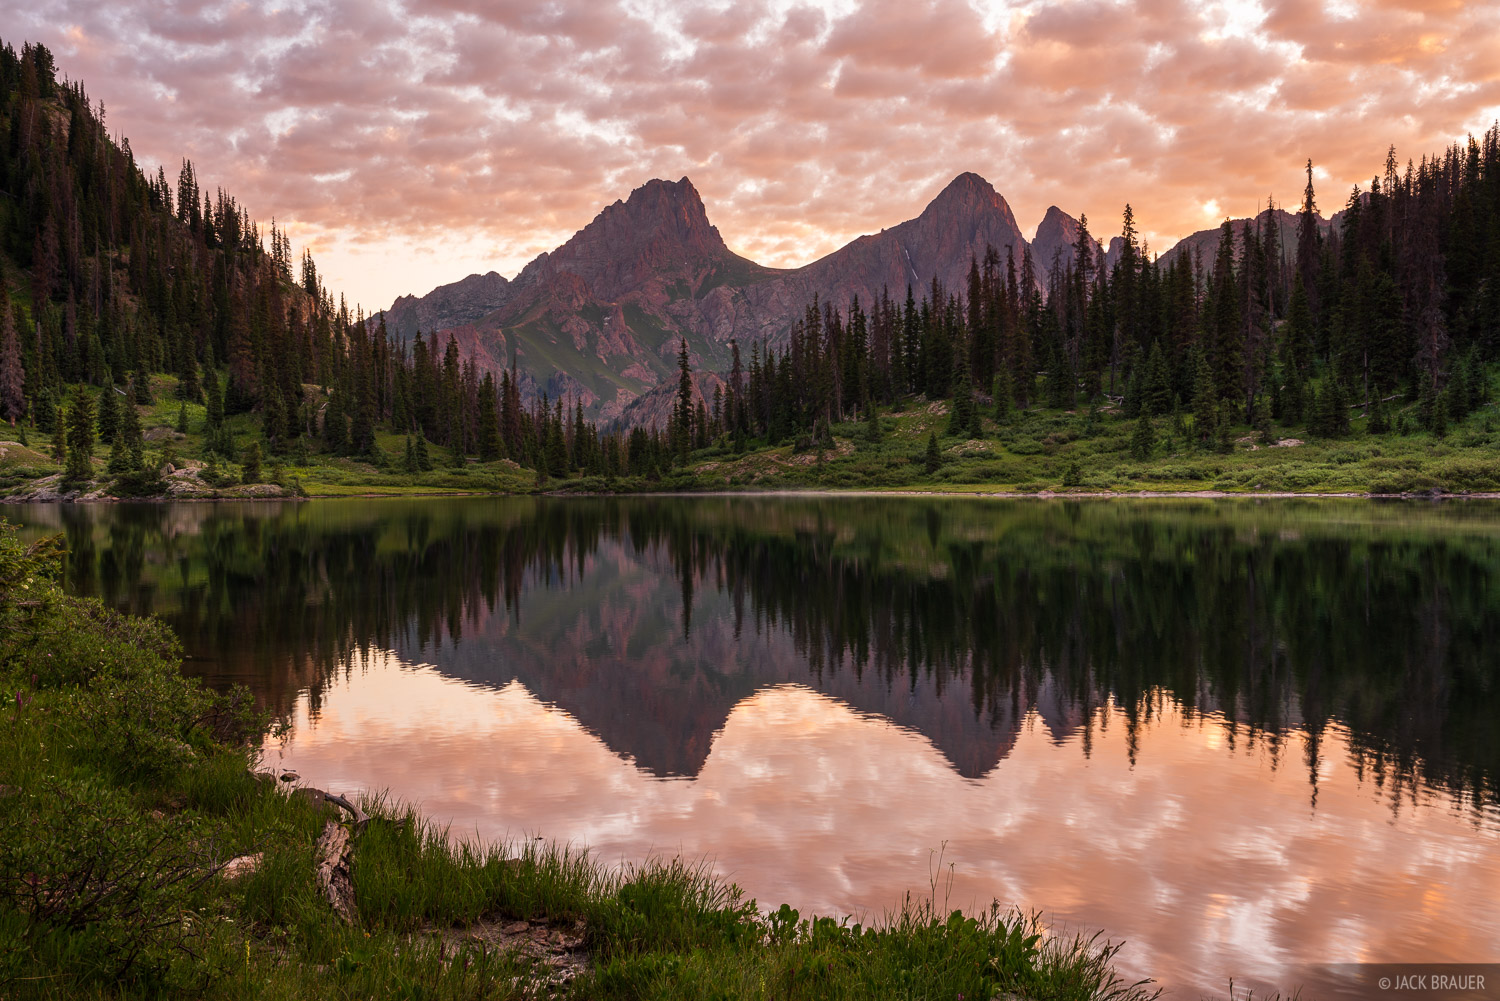 Colorado, Needle Mountains, Pigeon Peak, San Juan Mountains, Turret Peak, Weminuche Wilderness, reflection, photo